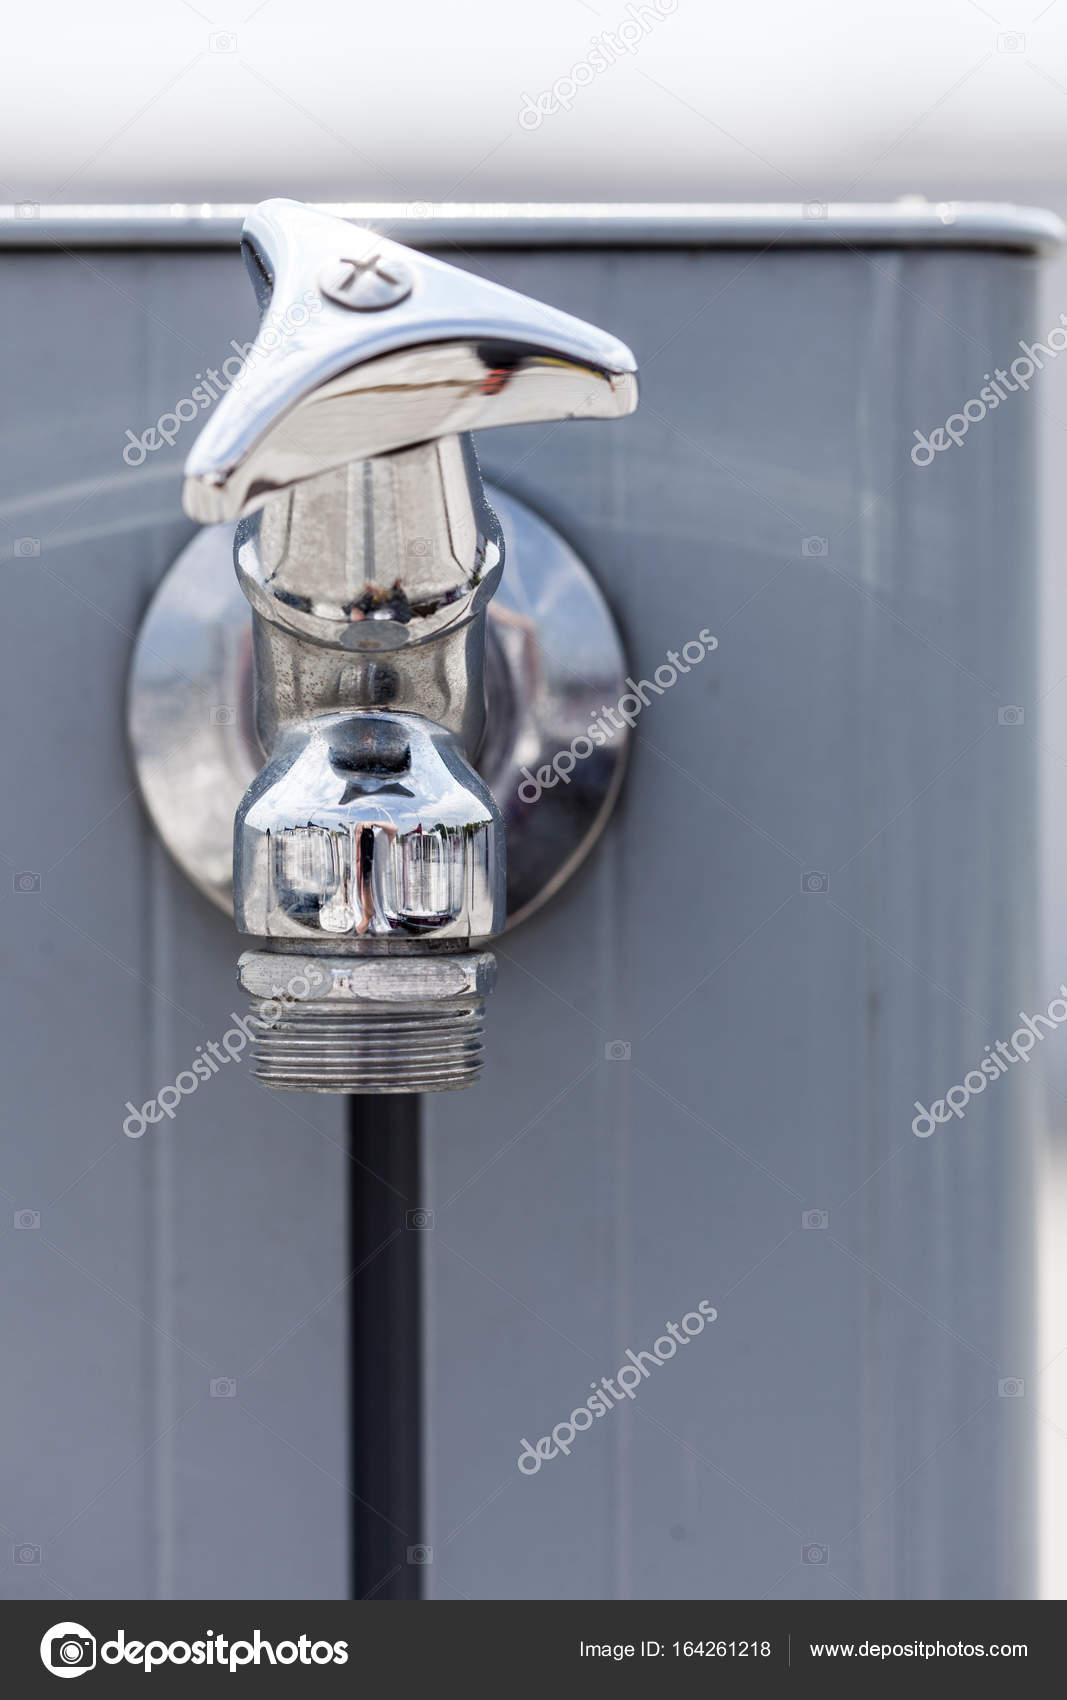 Great Small Metal Tap Water Outside U2014 Stock Photo